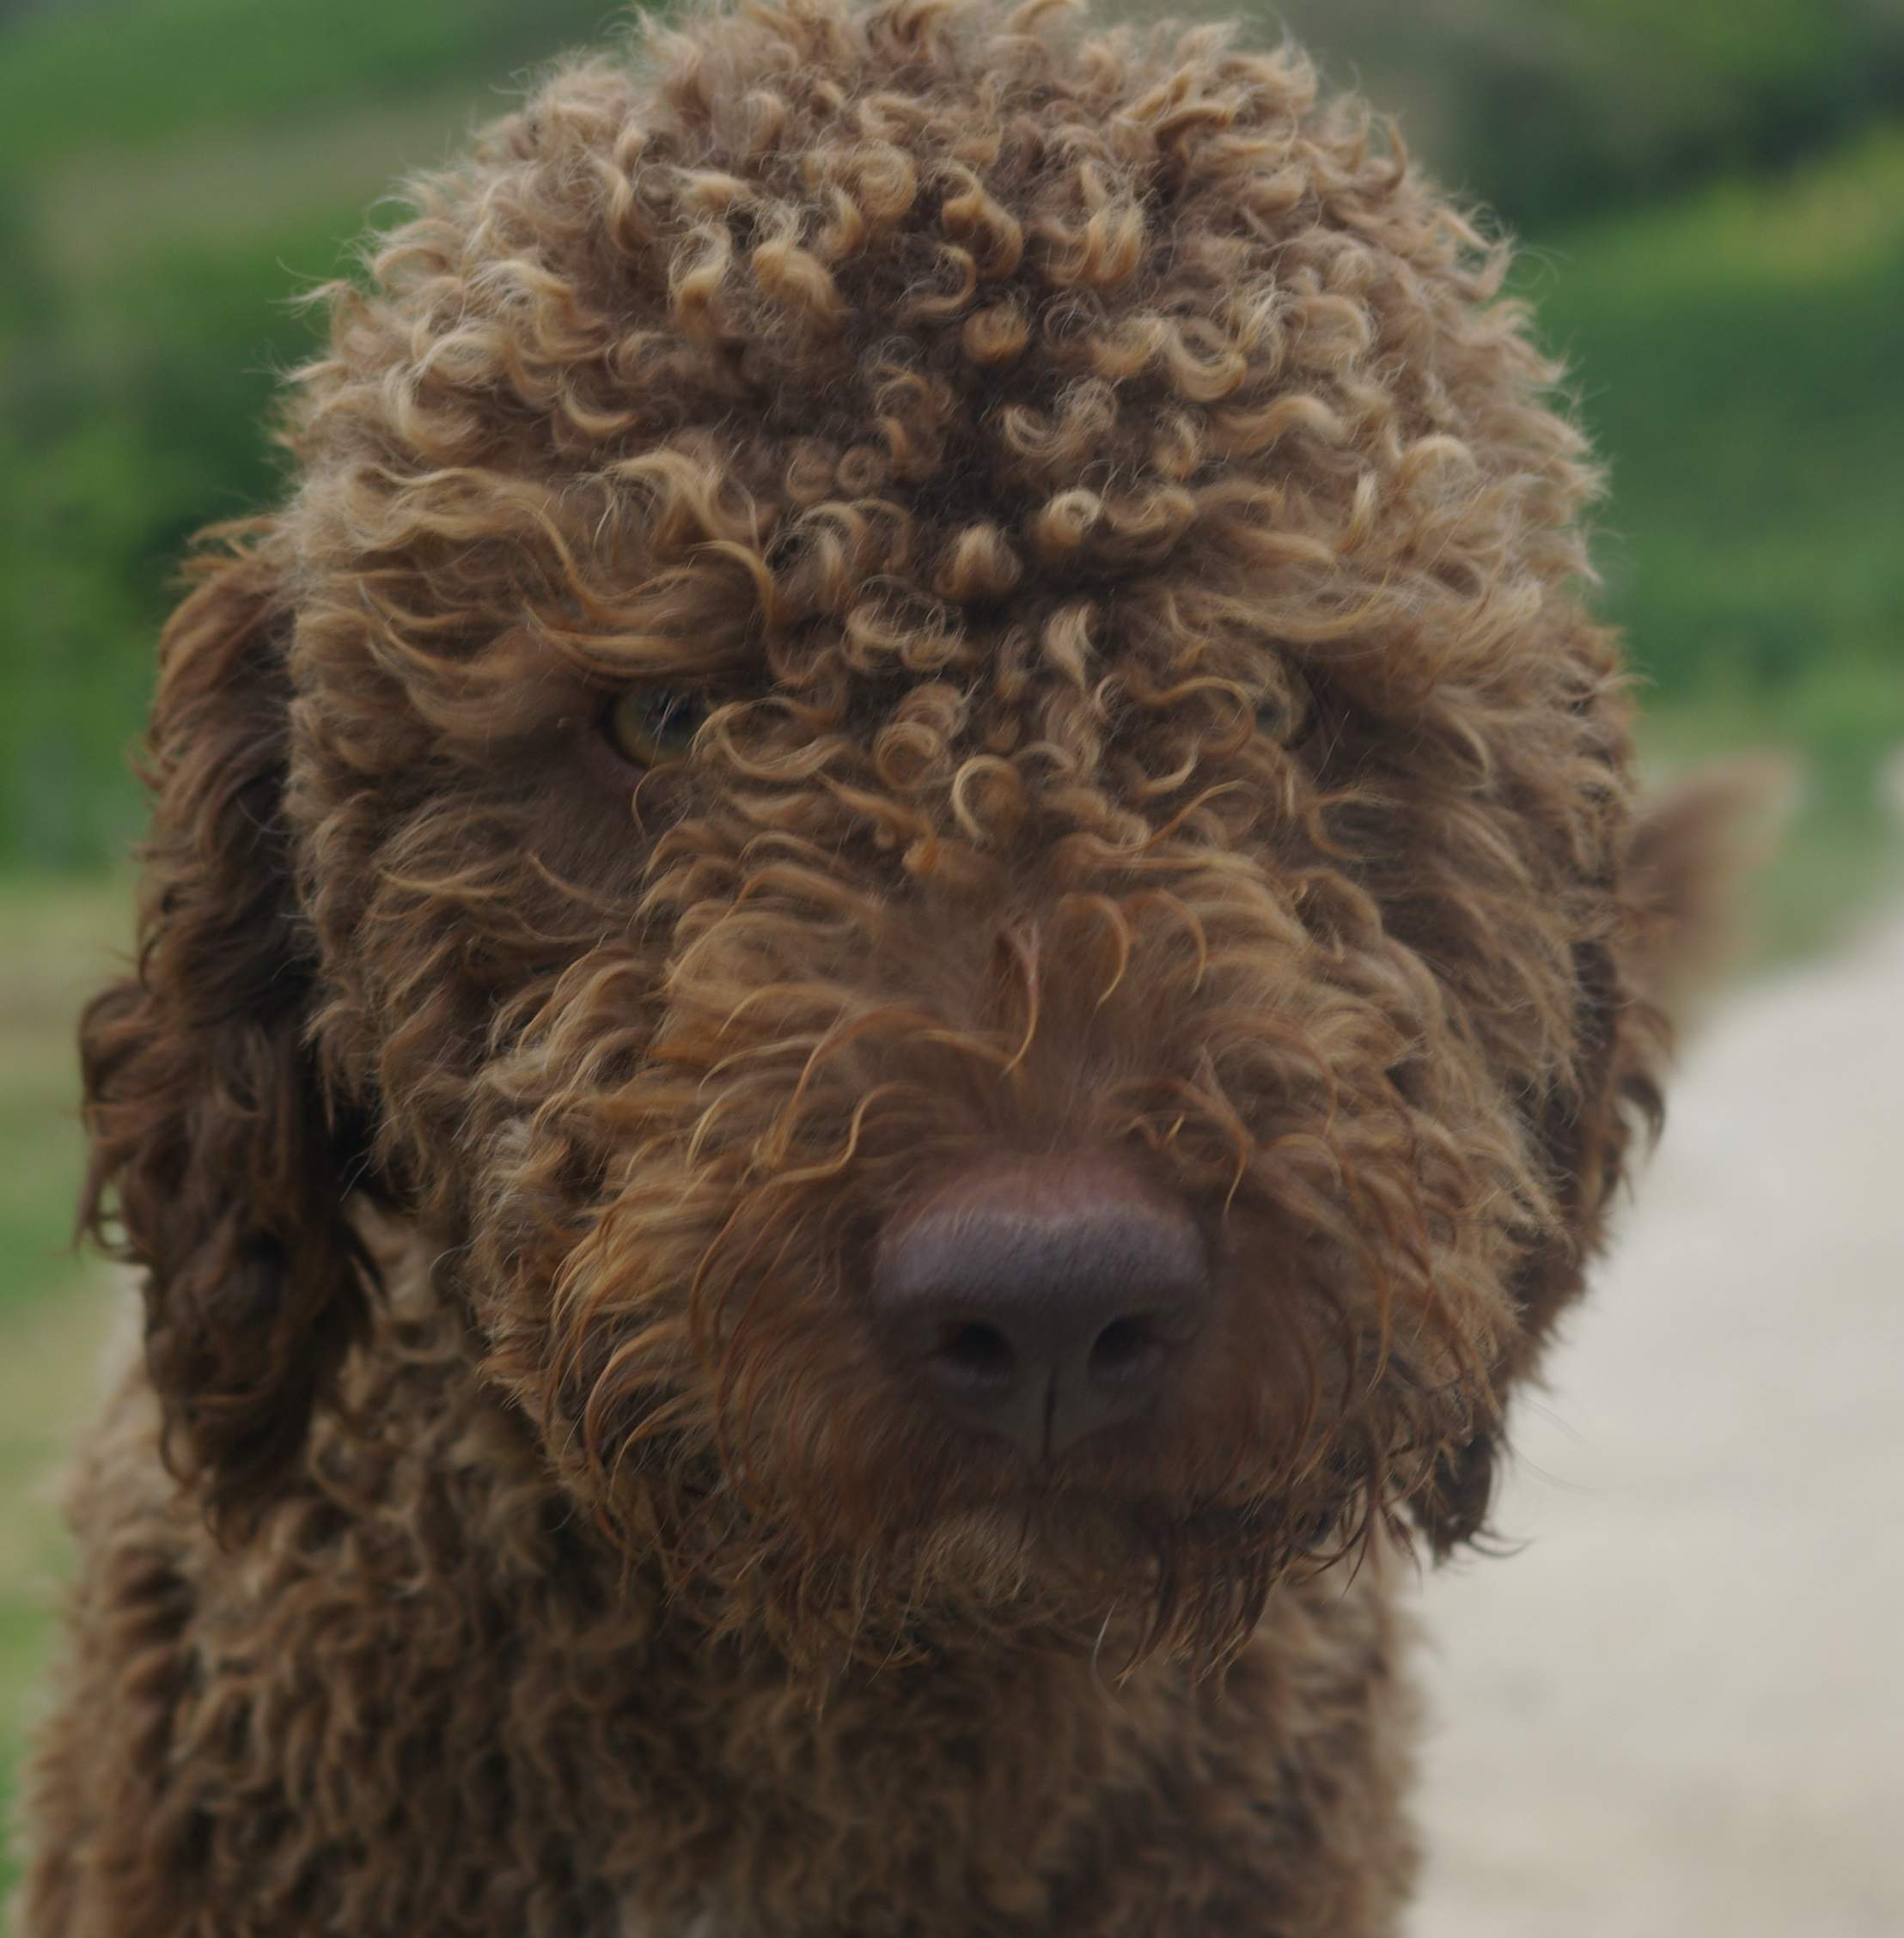 Lagotto Romagnolo Dog: Lagotto Lagotto Romagnolo Dog Face Breed